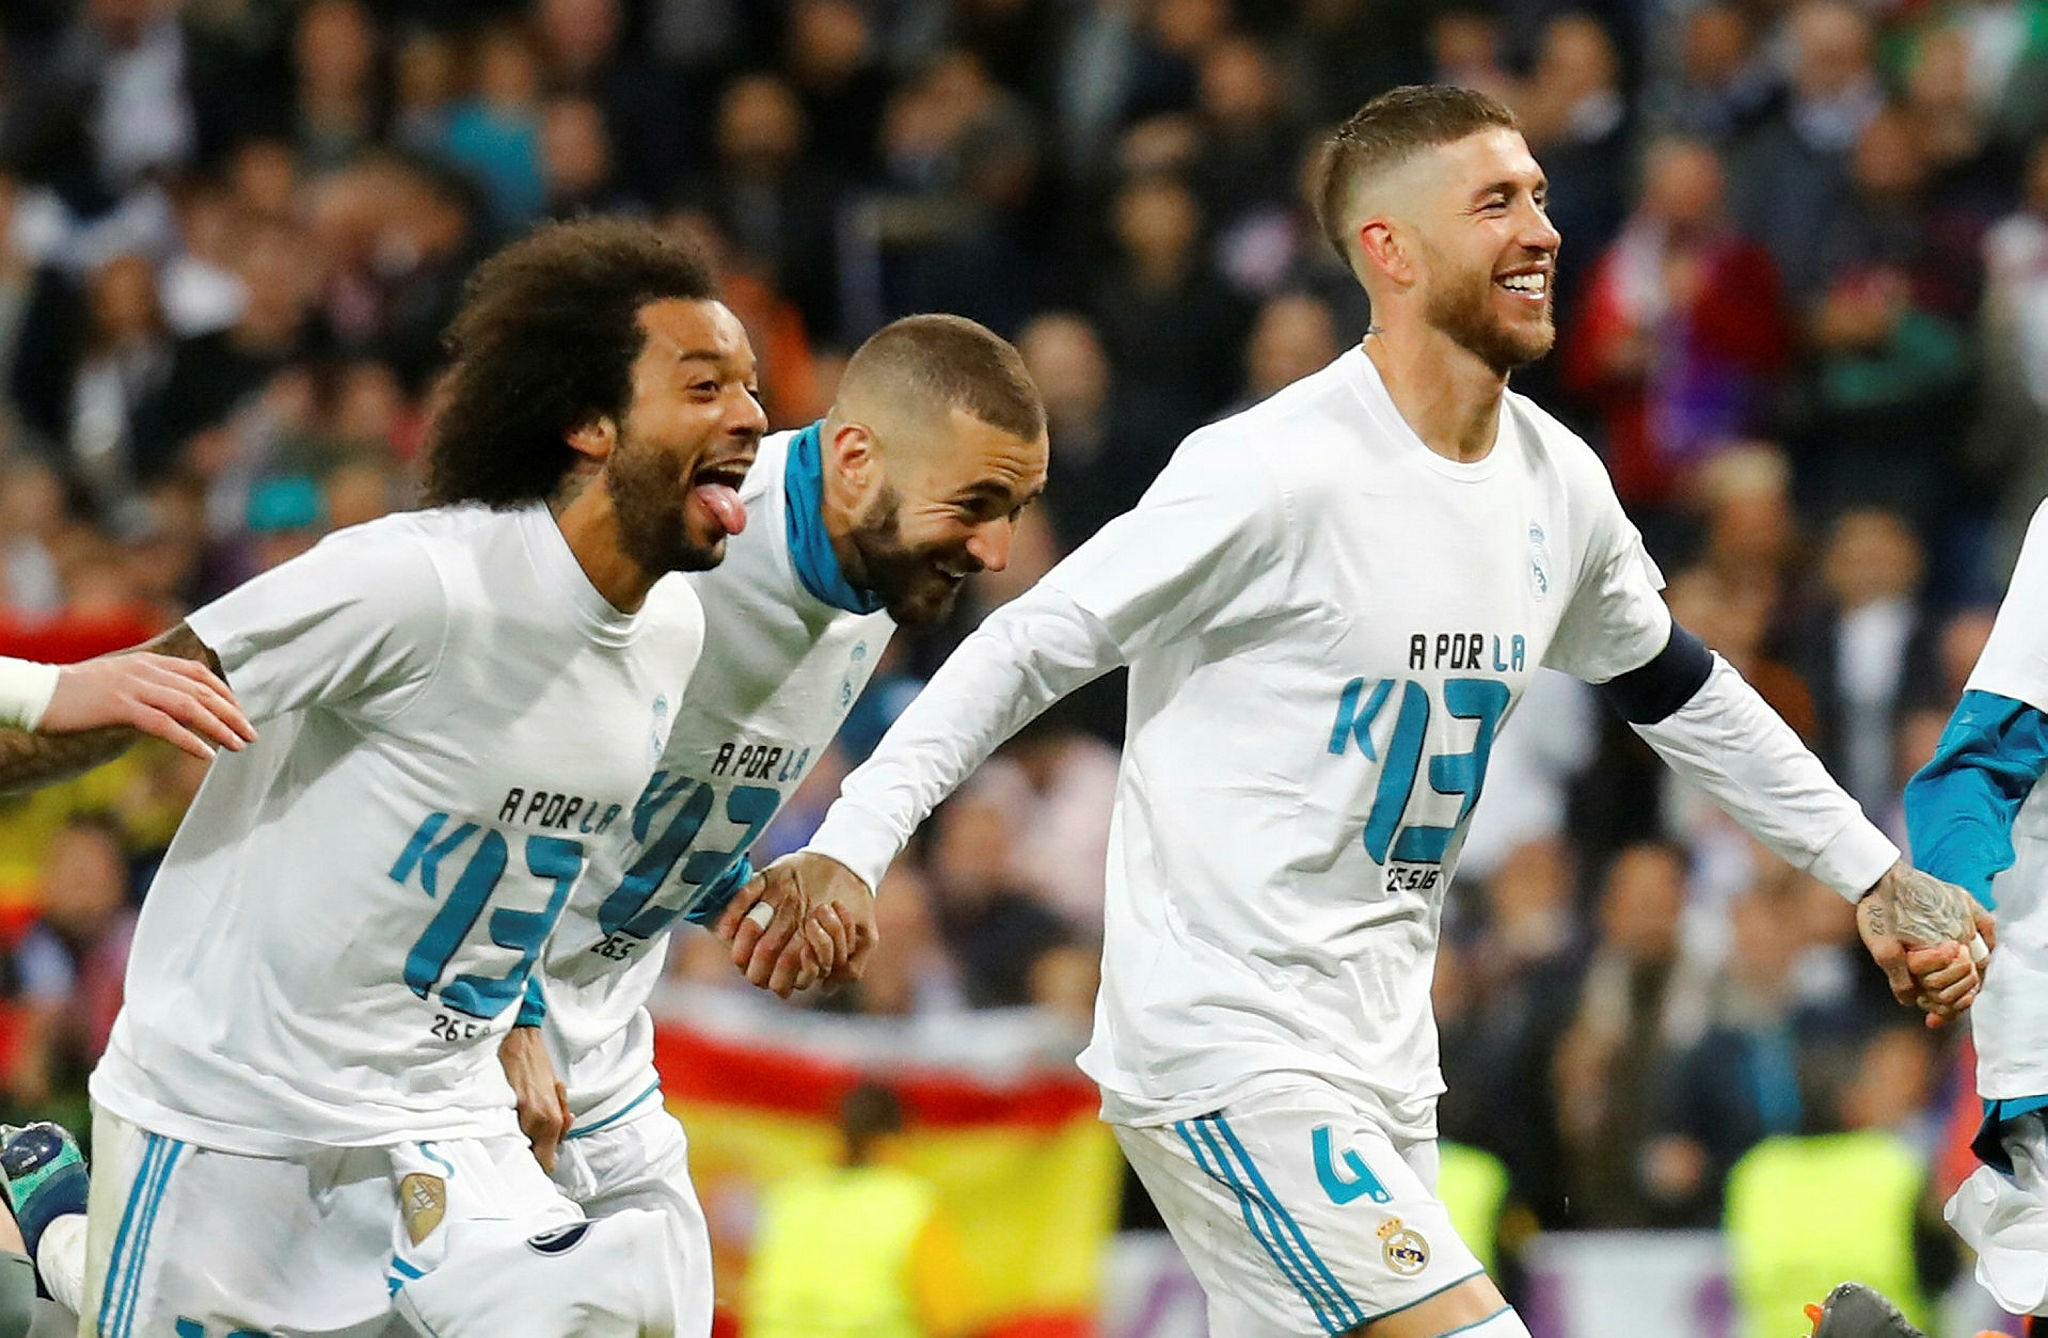 Real Madrid's Sergio Ramos, Karim Benzema and Marcelo celebrate after the match (Reuters Photo)